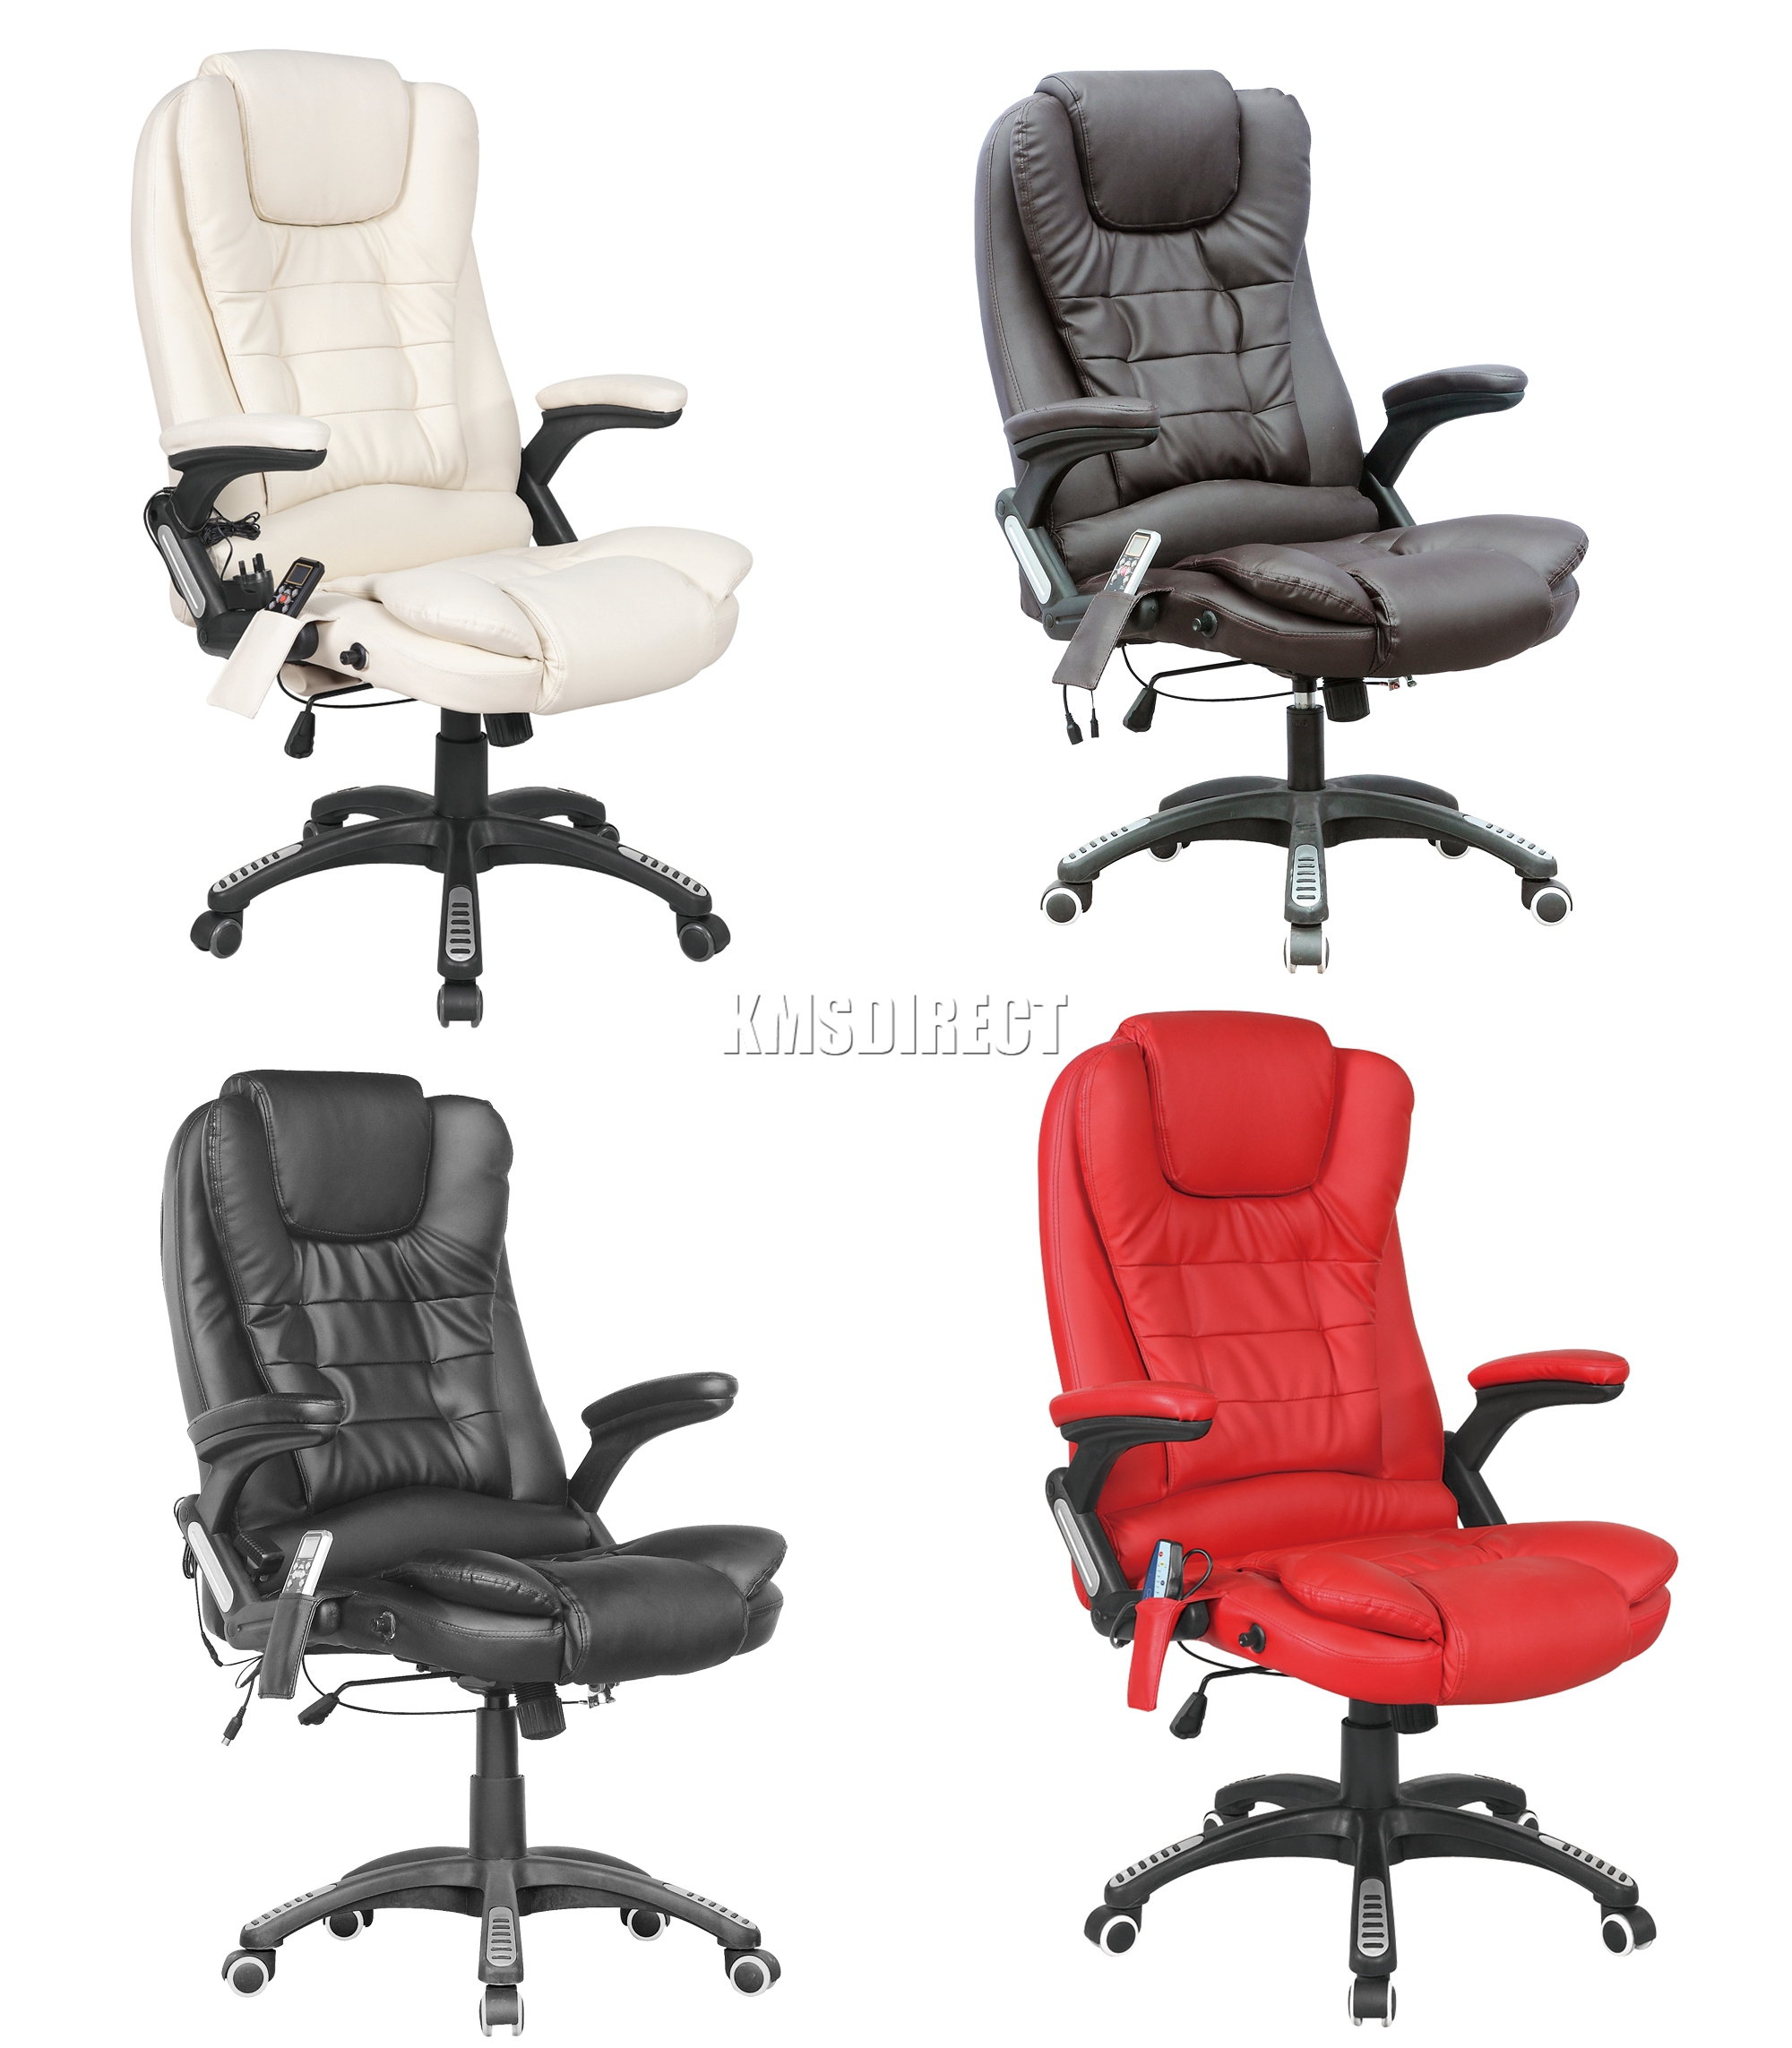 Recliner Computer Chair Foxhunter 8025 Leather 6 Point Massage Office Computer